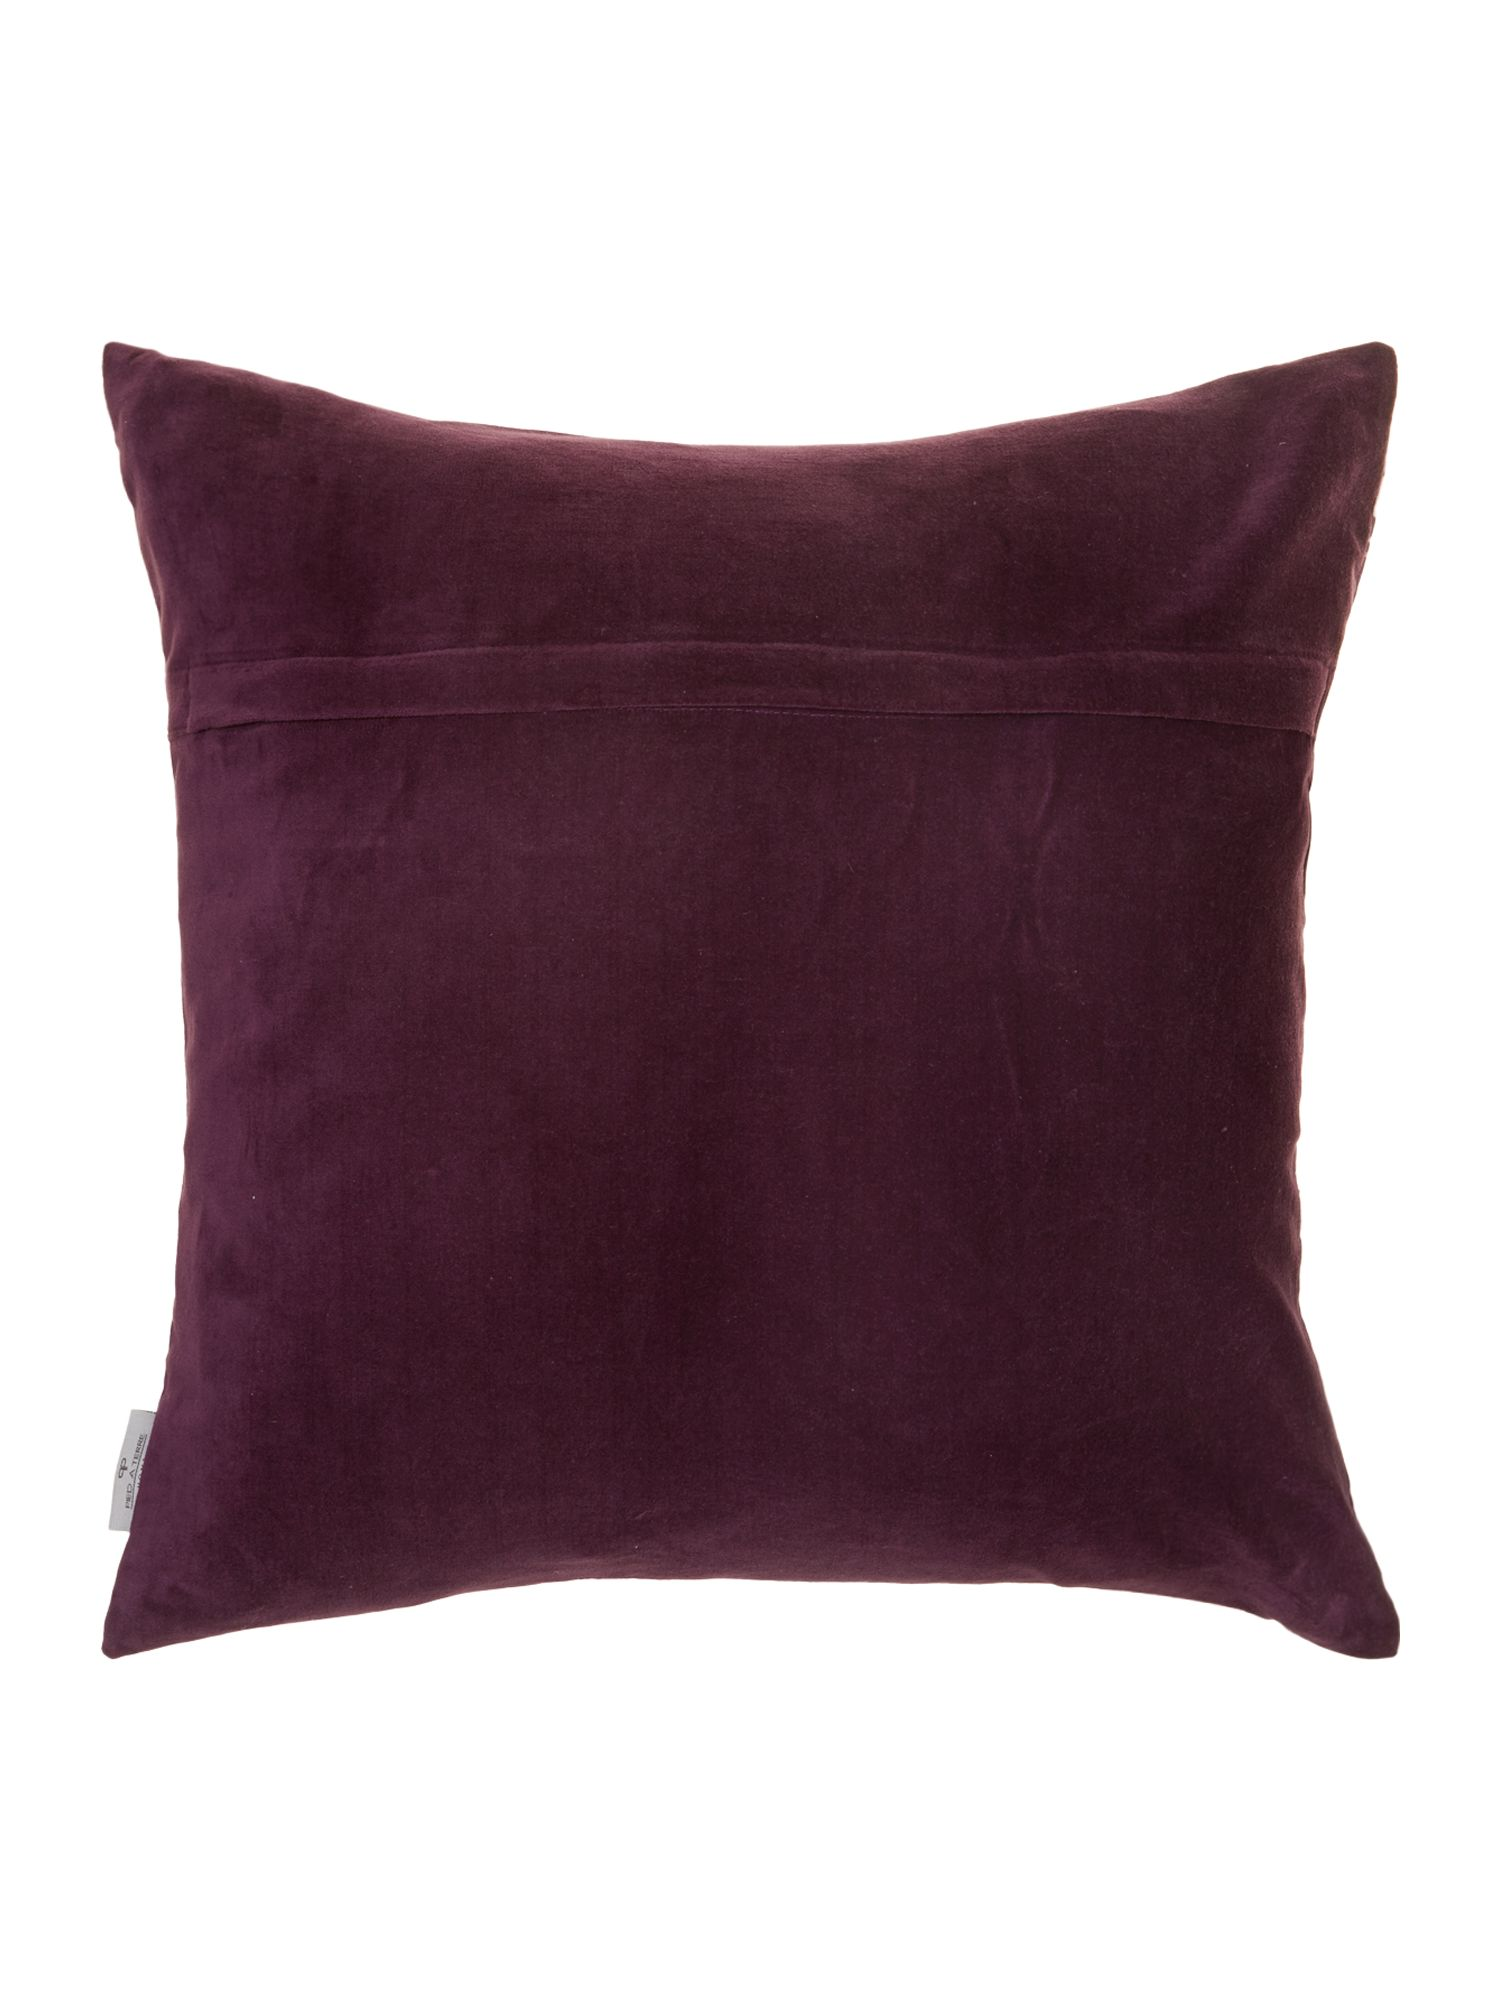 Digital leaf print cushion, purple